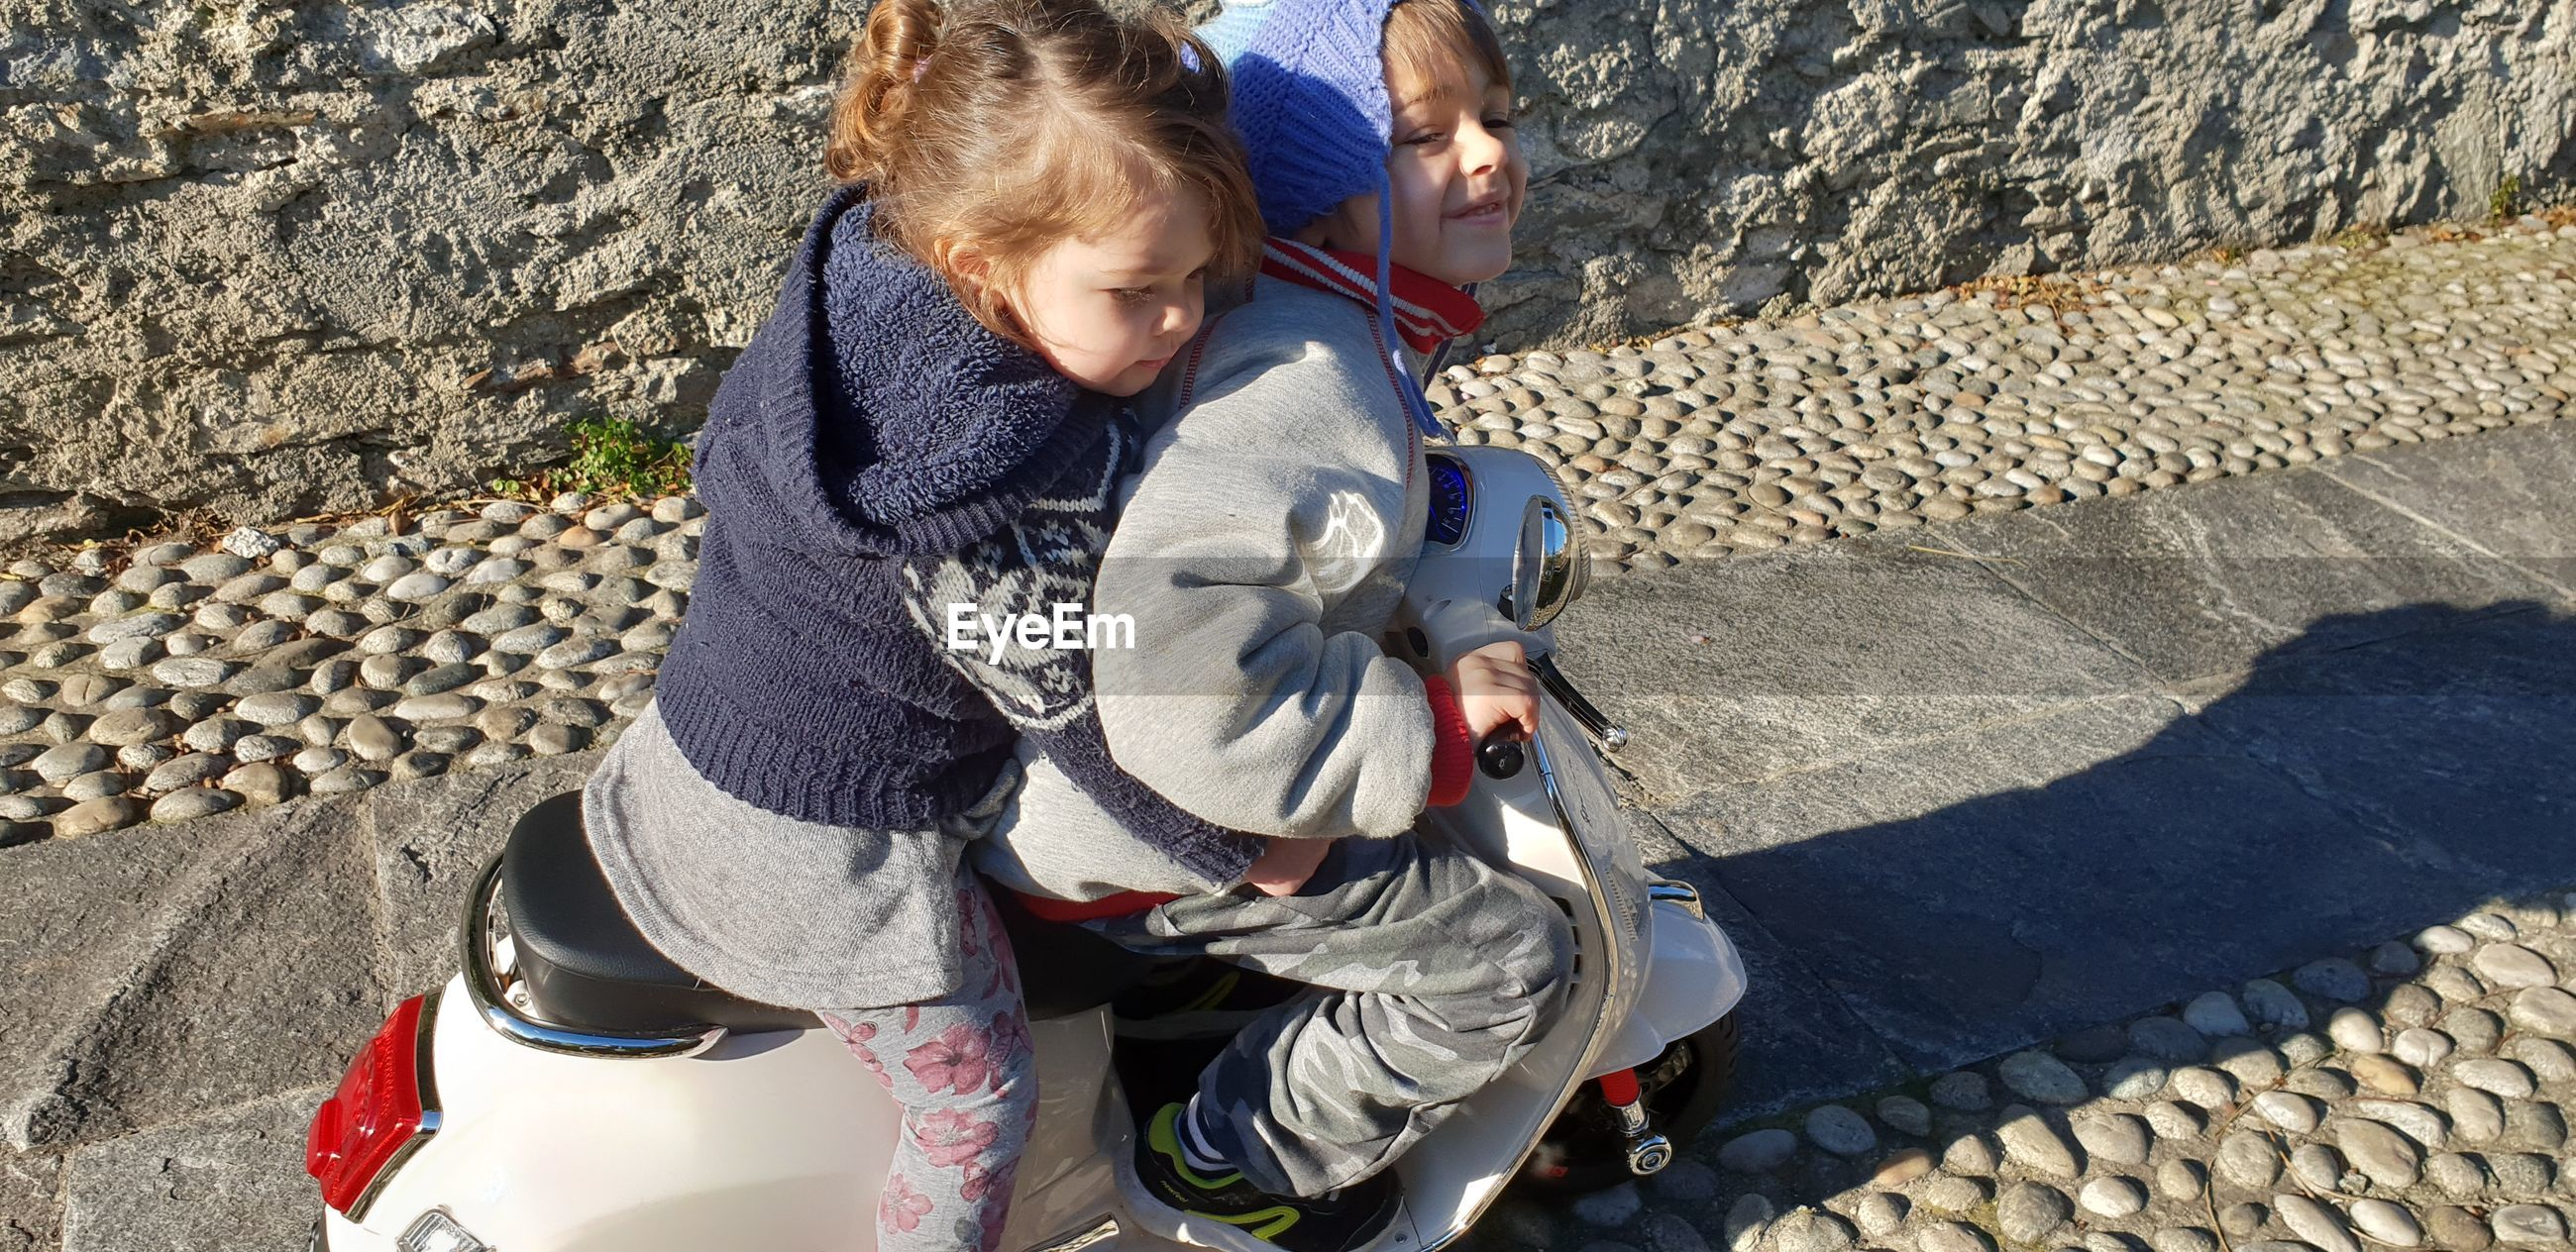 High angle view of siblings riding motor scooter on footpath